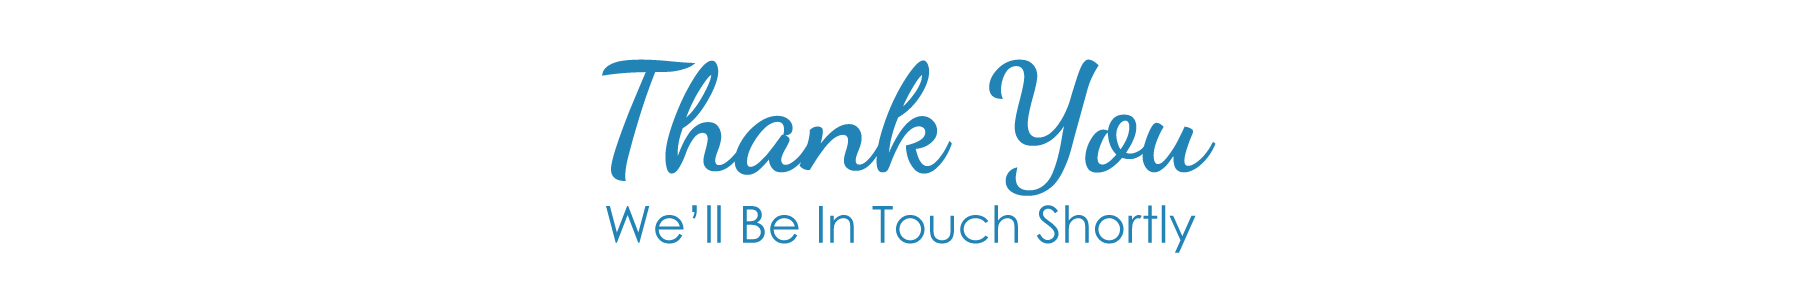 LTF-March-SculpSure-Special-Thank-You-1800x300